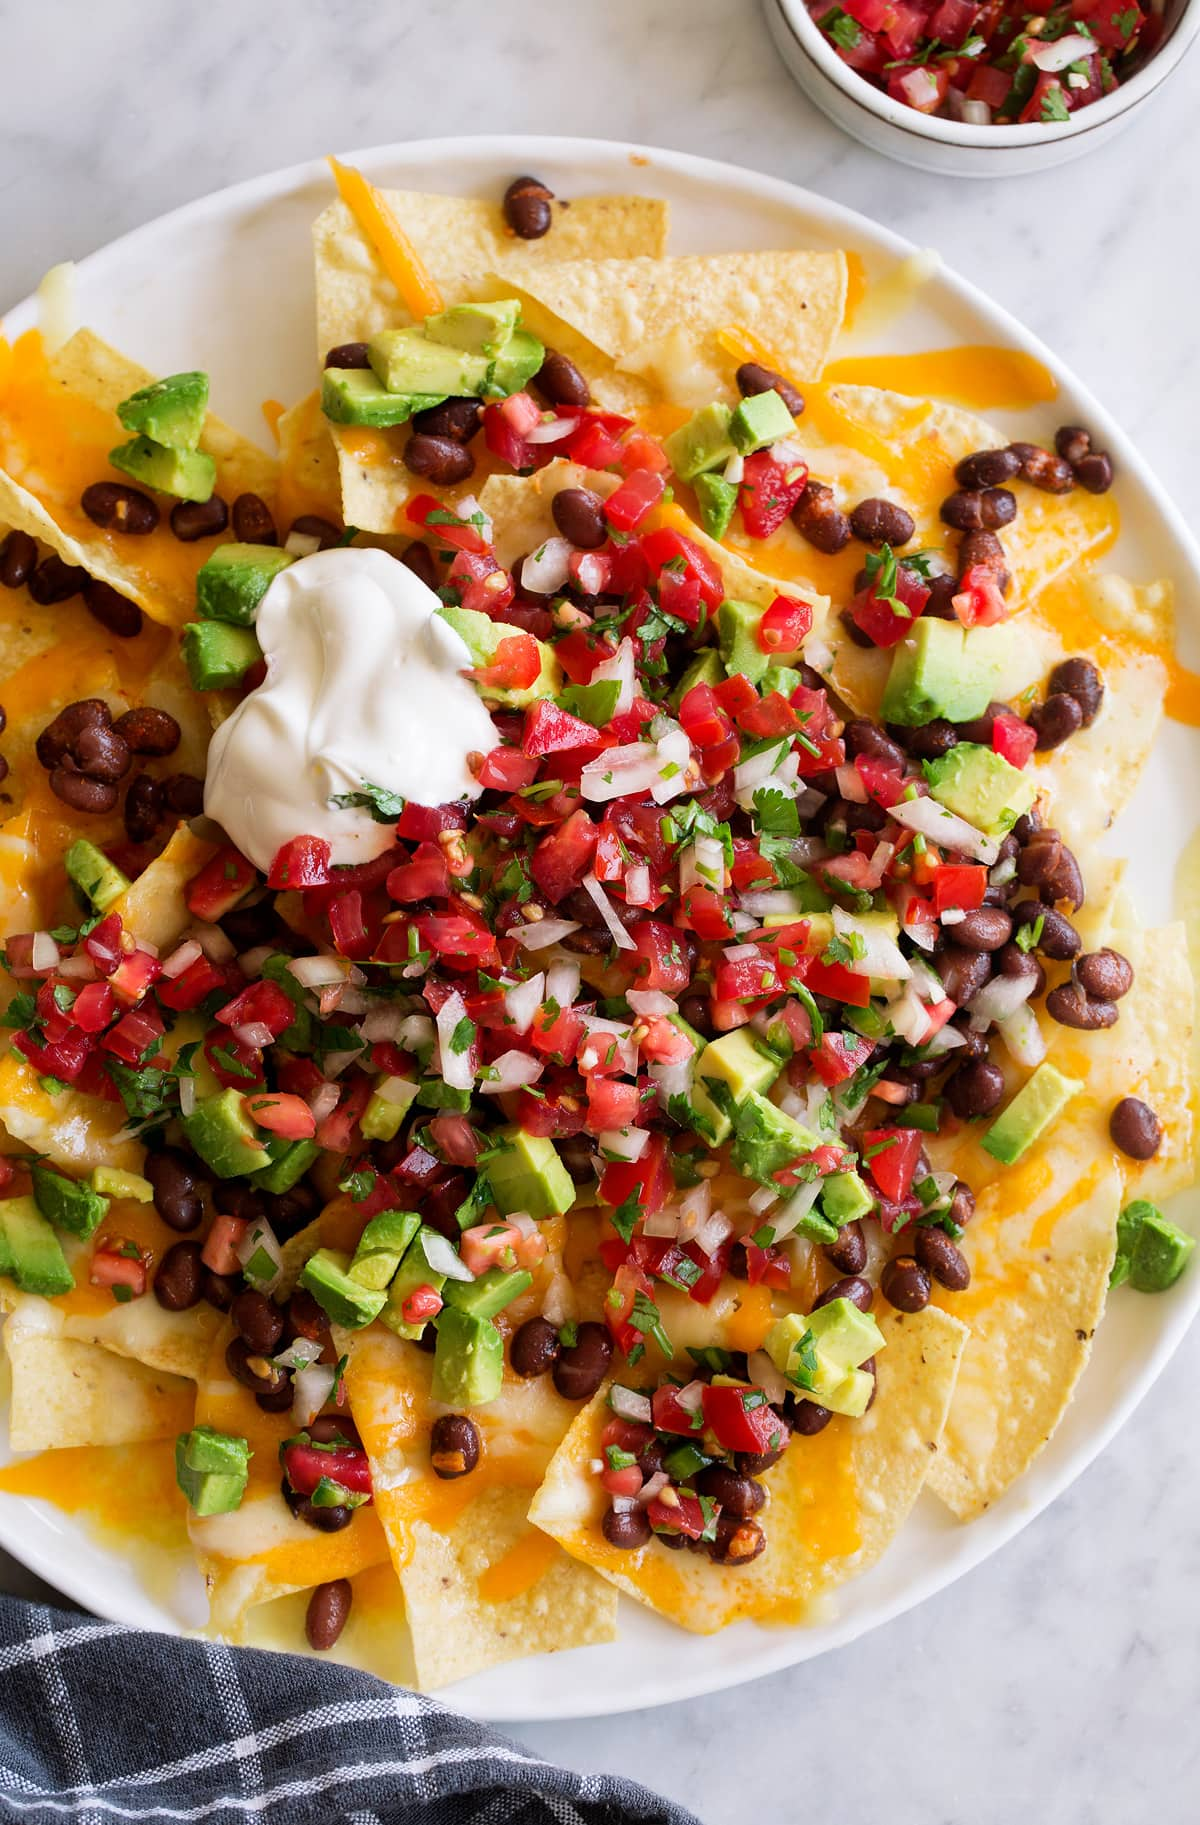 Pico de gallo over nachos along with melted cheddar, black beans, diced avocado and sour cream.